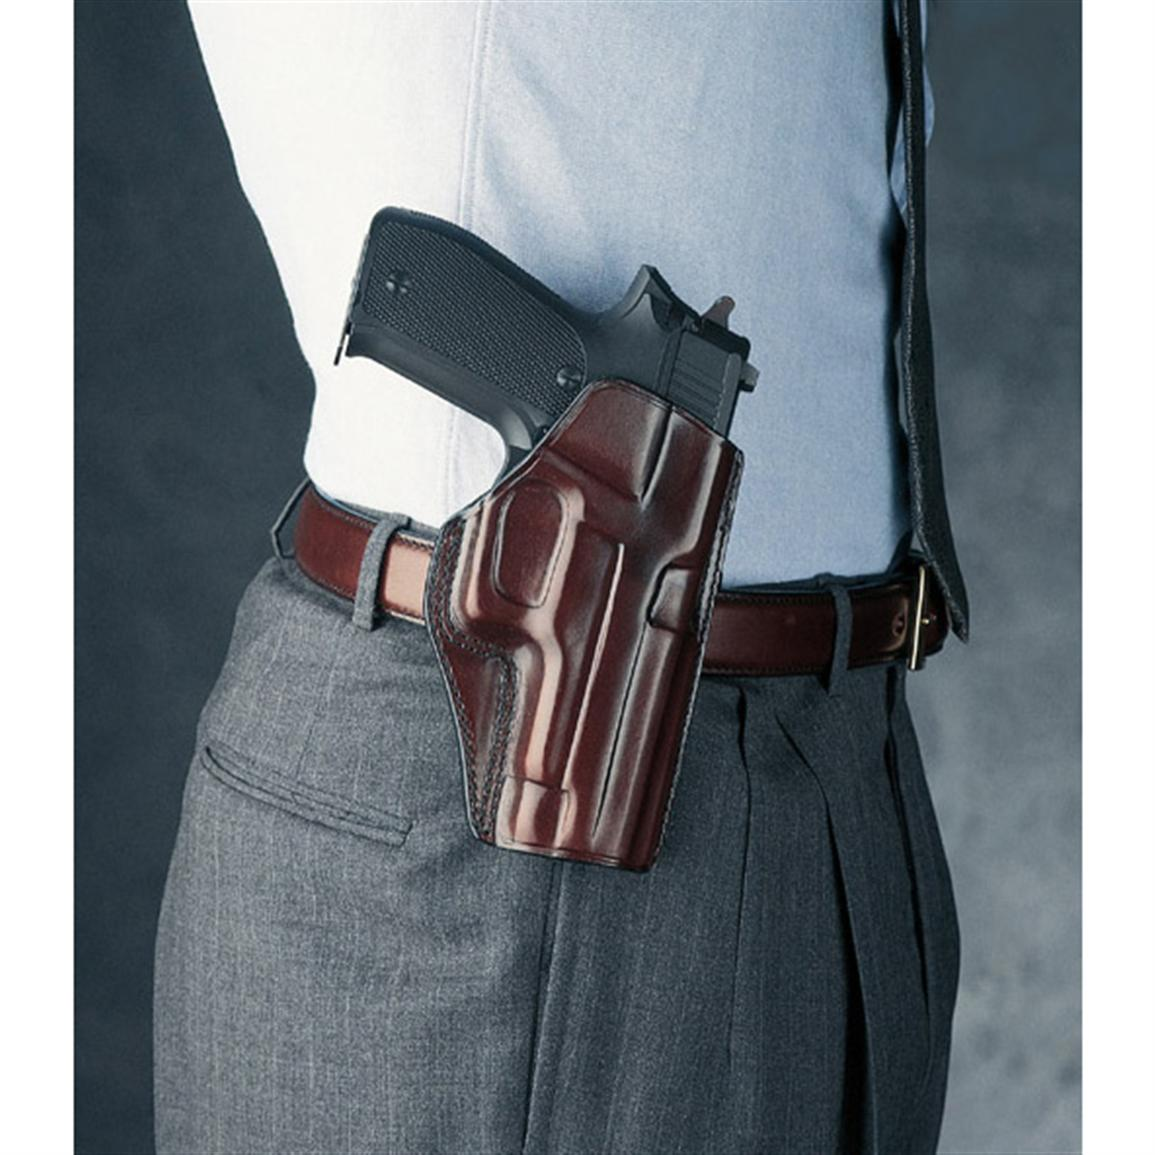 Galco® Concealed Carry Paddle Holster